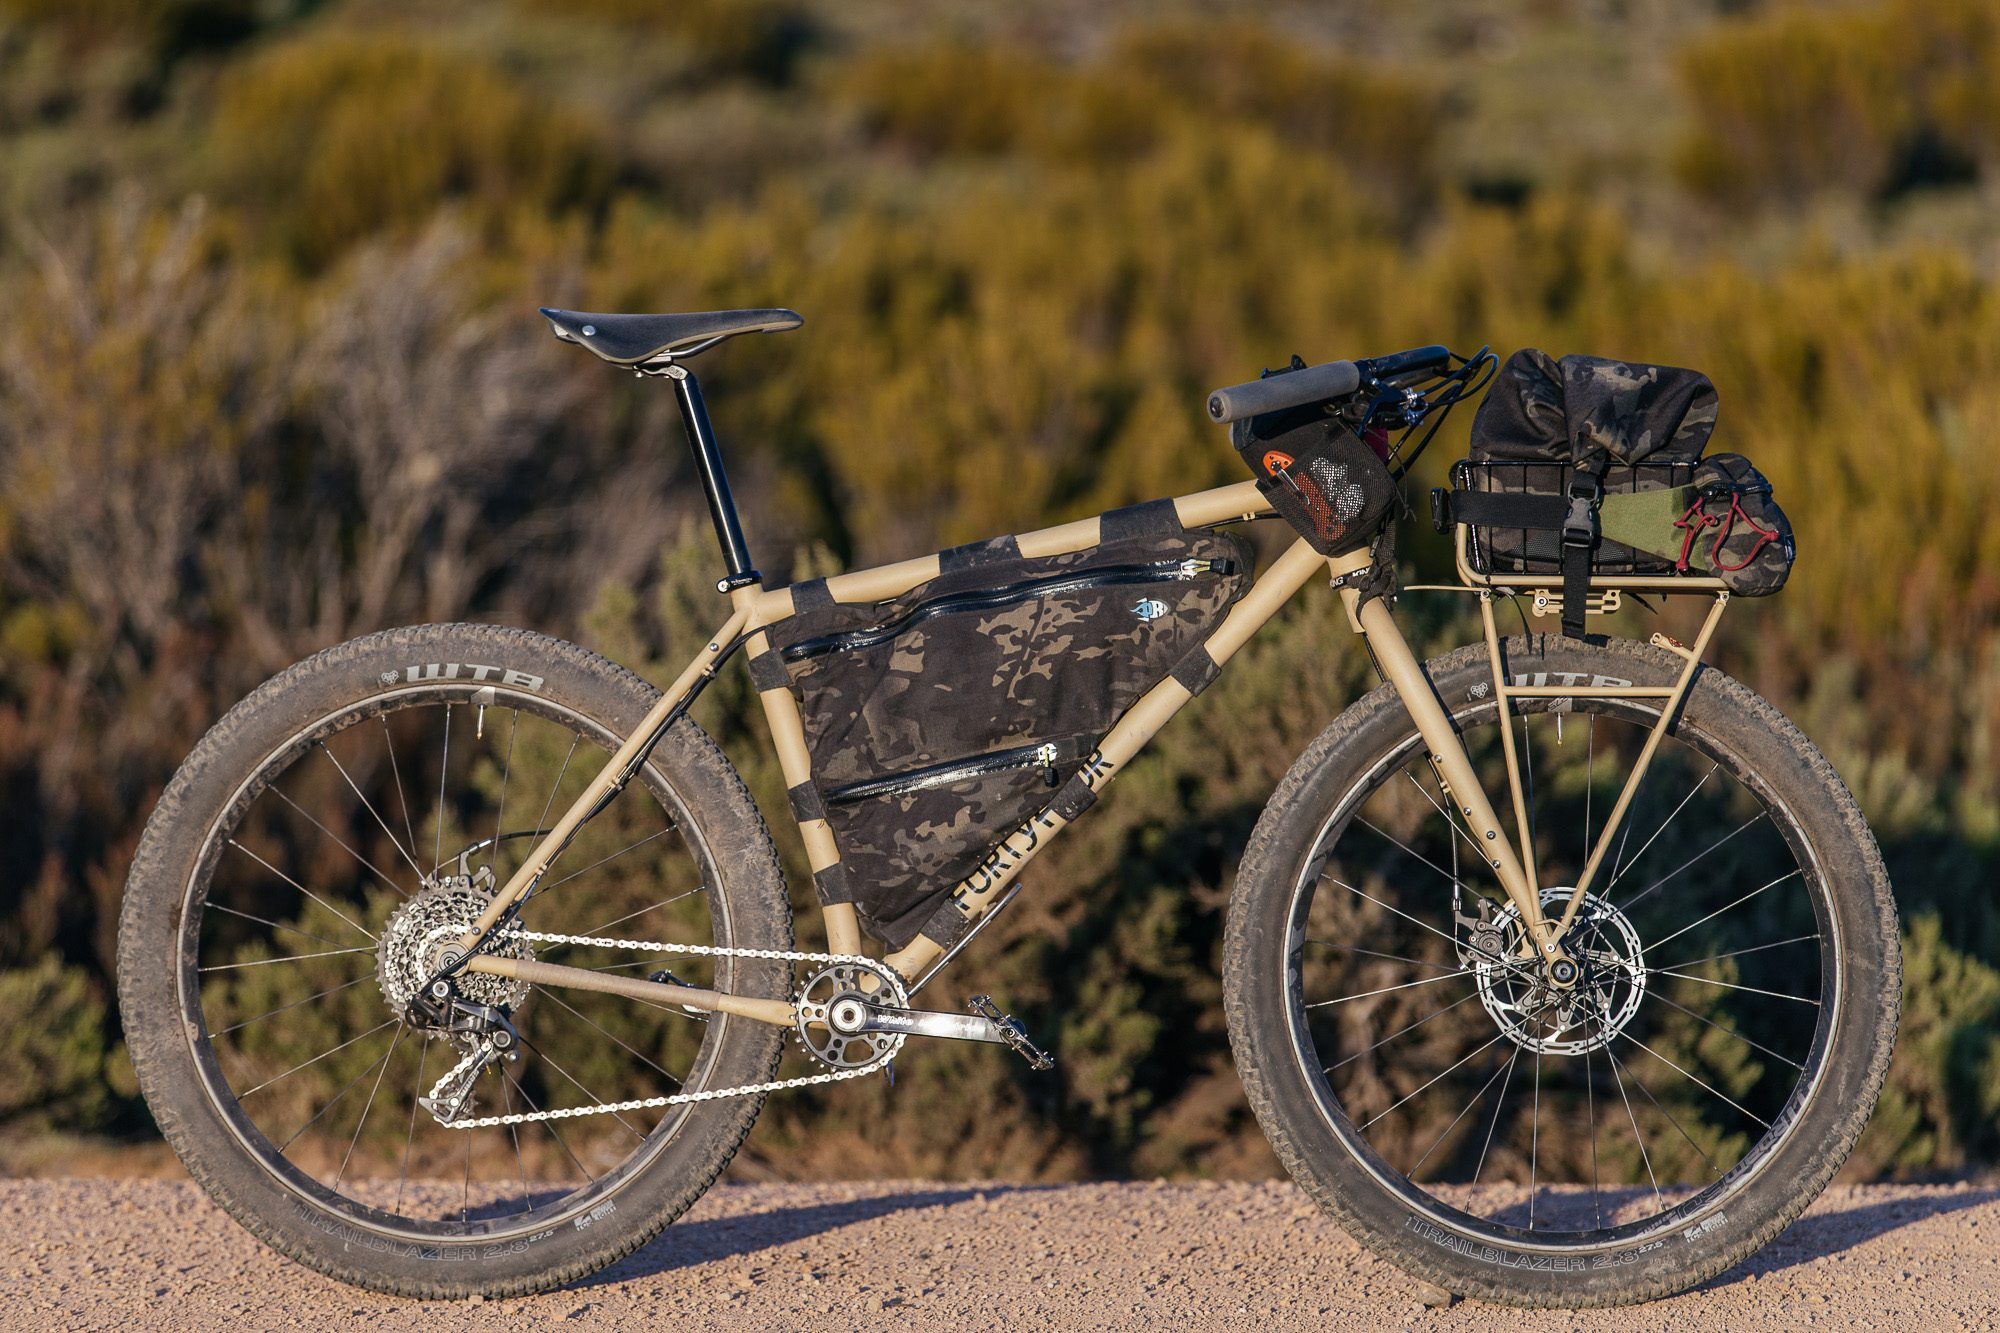 09-My-Bush-Blasted-44-Bikes-Rigid-MTB-Tourer-35